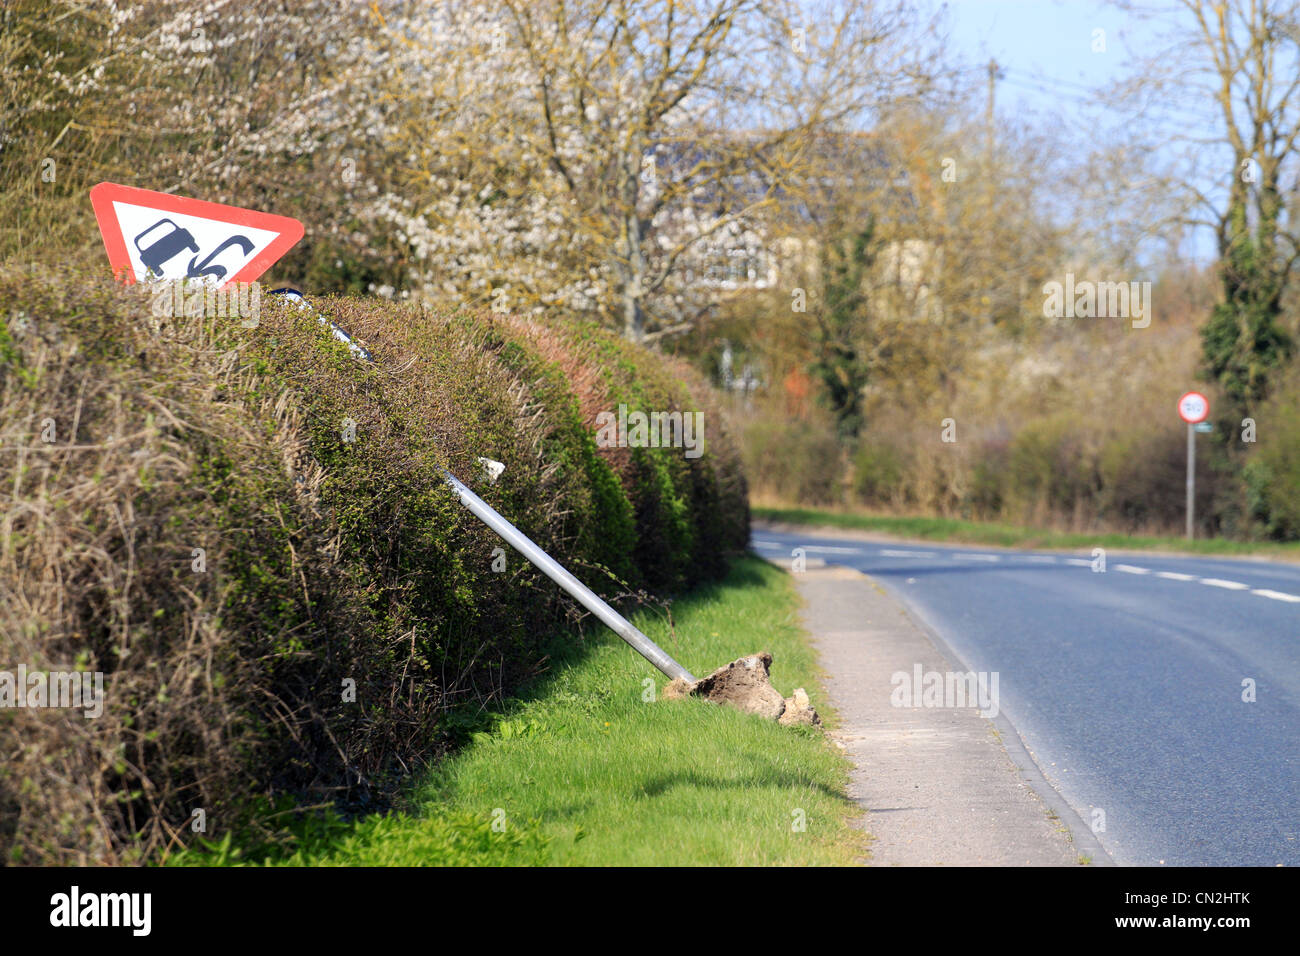 slippery road sign that has been knocked down by a car - Stock Image